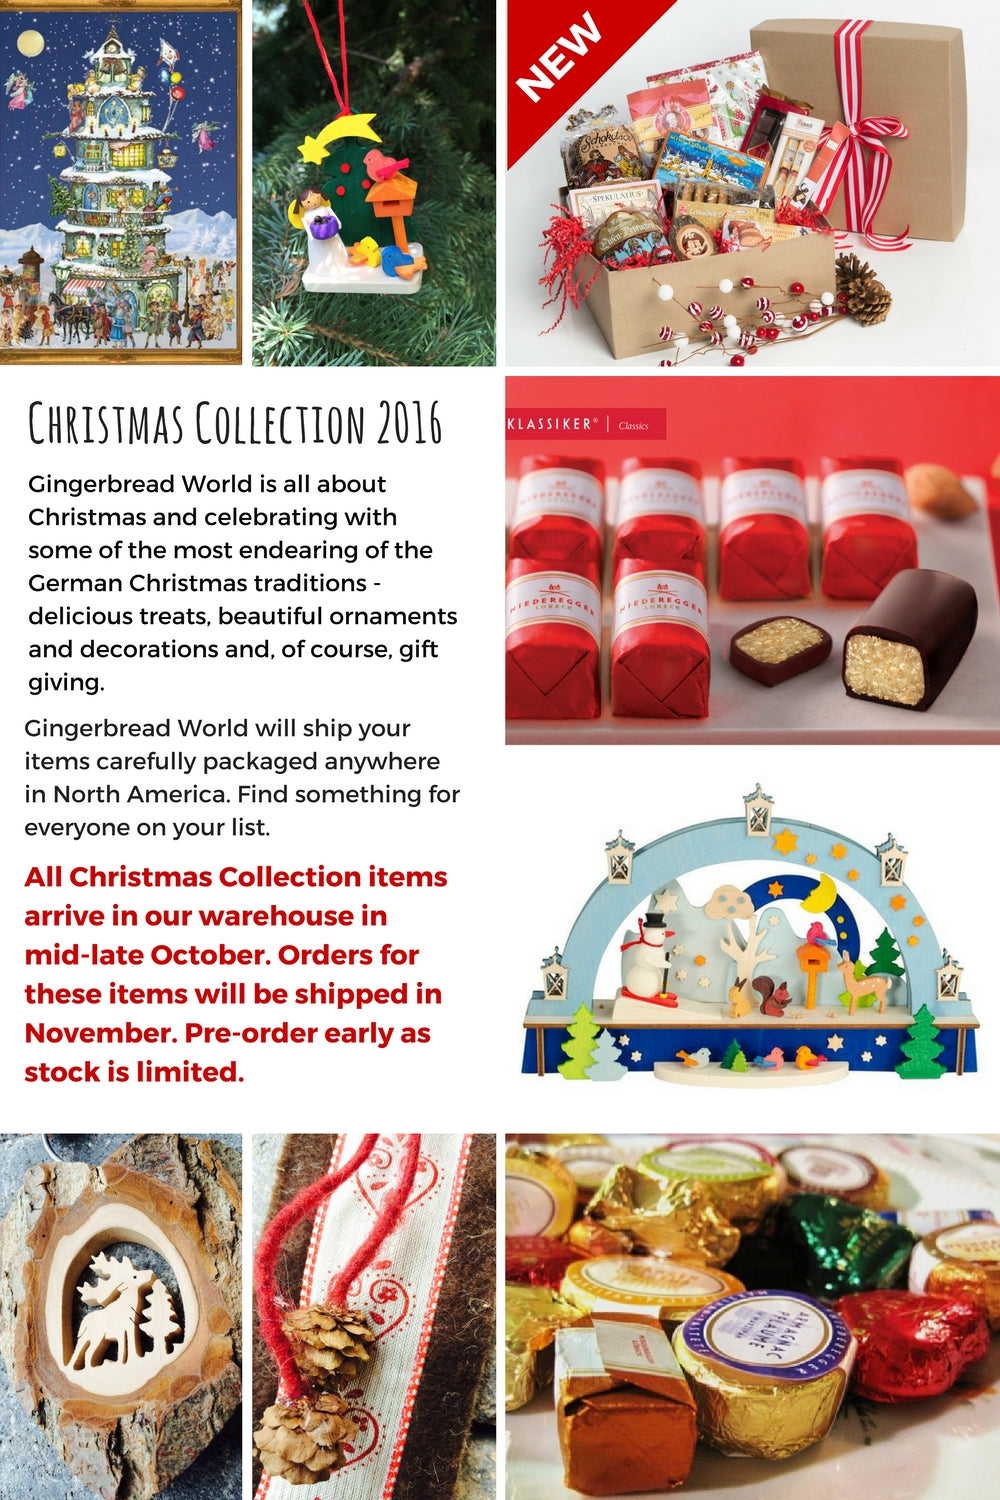 Gingerbread World Christmas Collection 2016